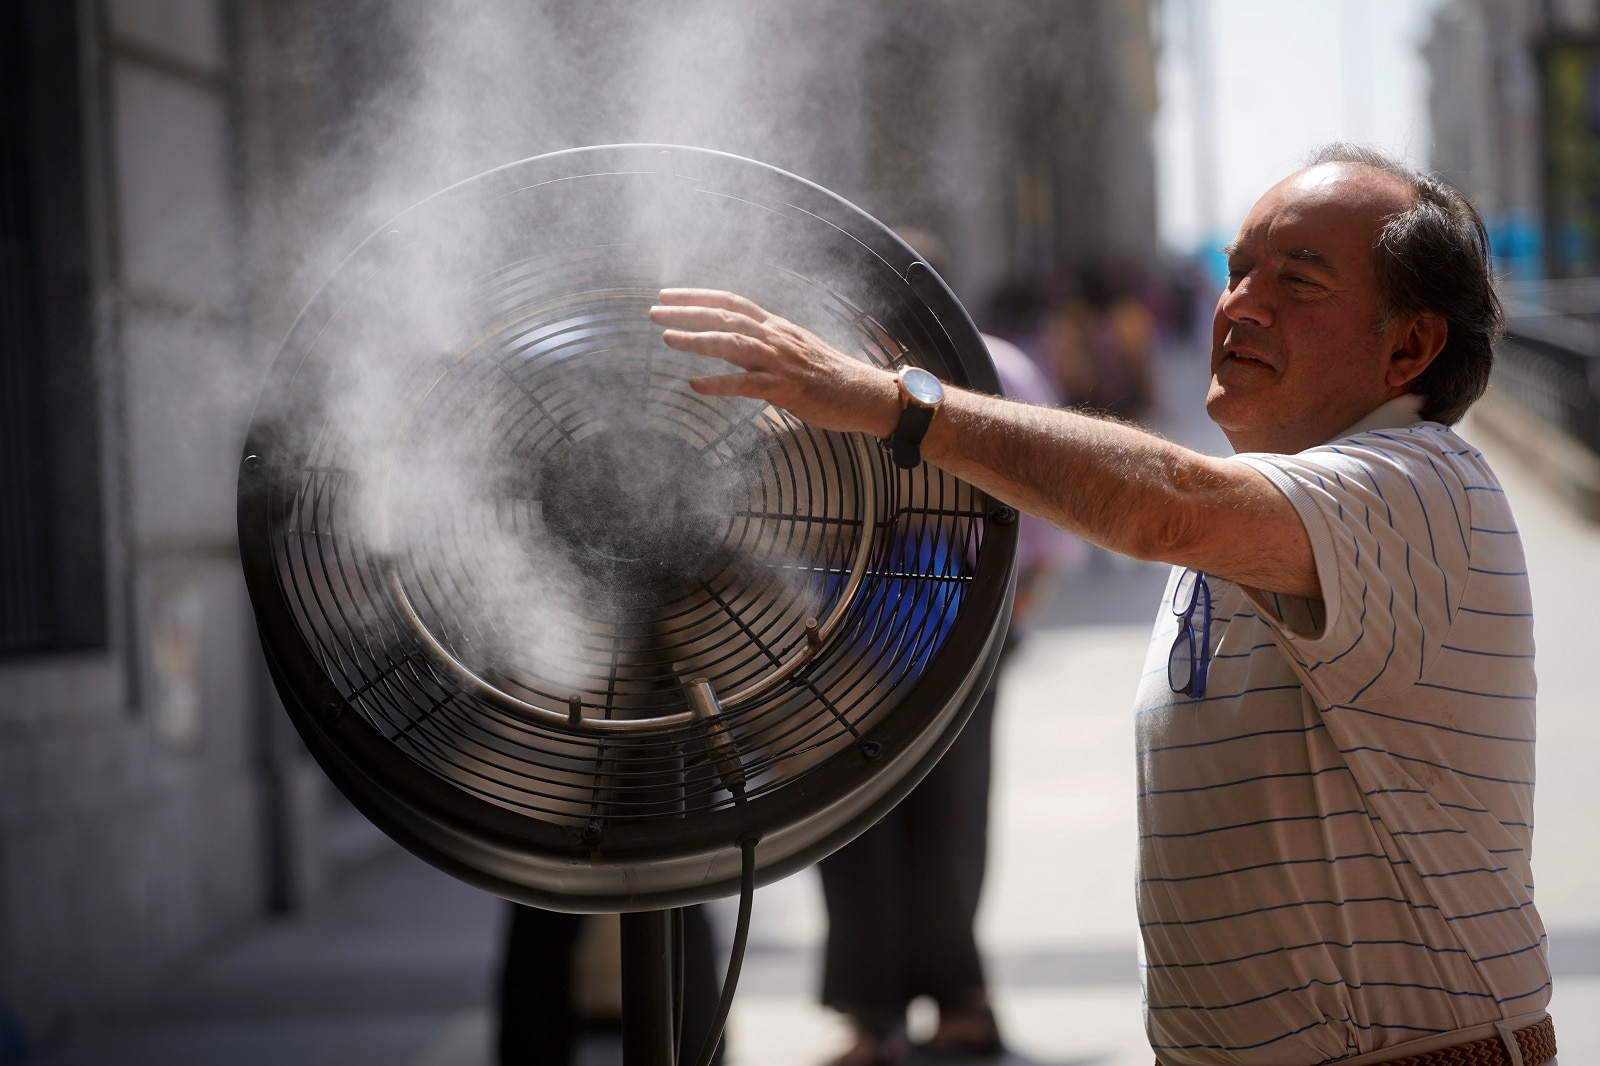 A man tries to cool himself with a fan in central Madrid, Spain, June 27, 2019. REUTERS/Juan Medina